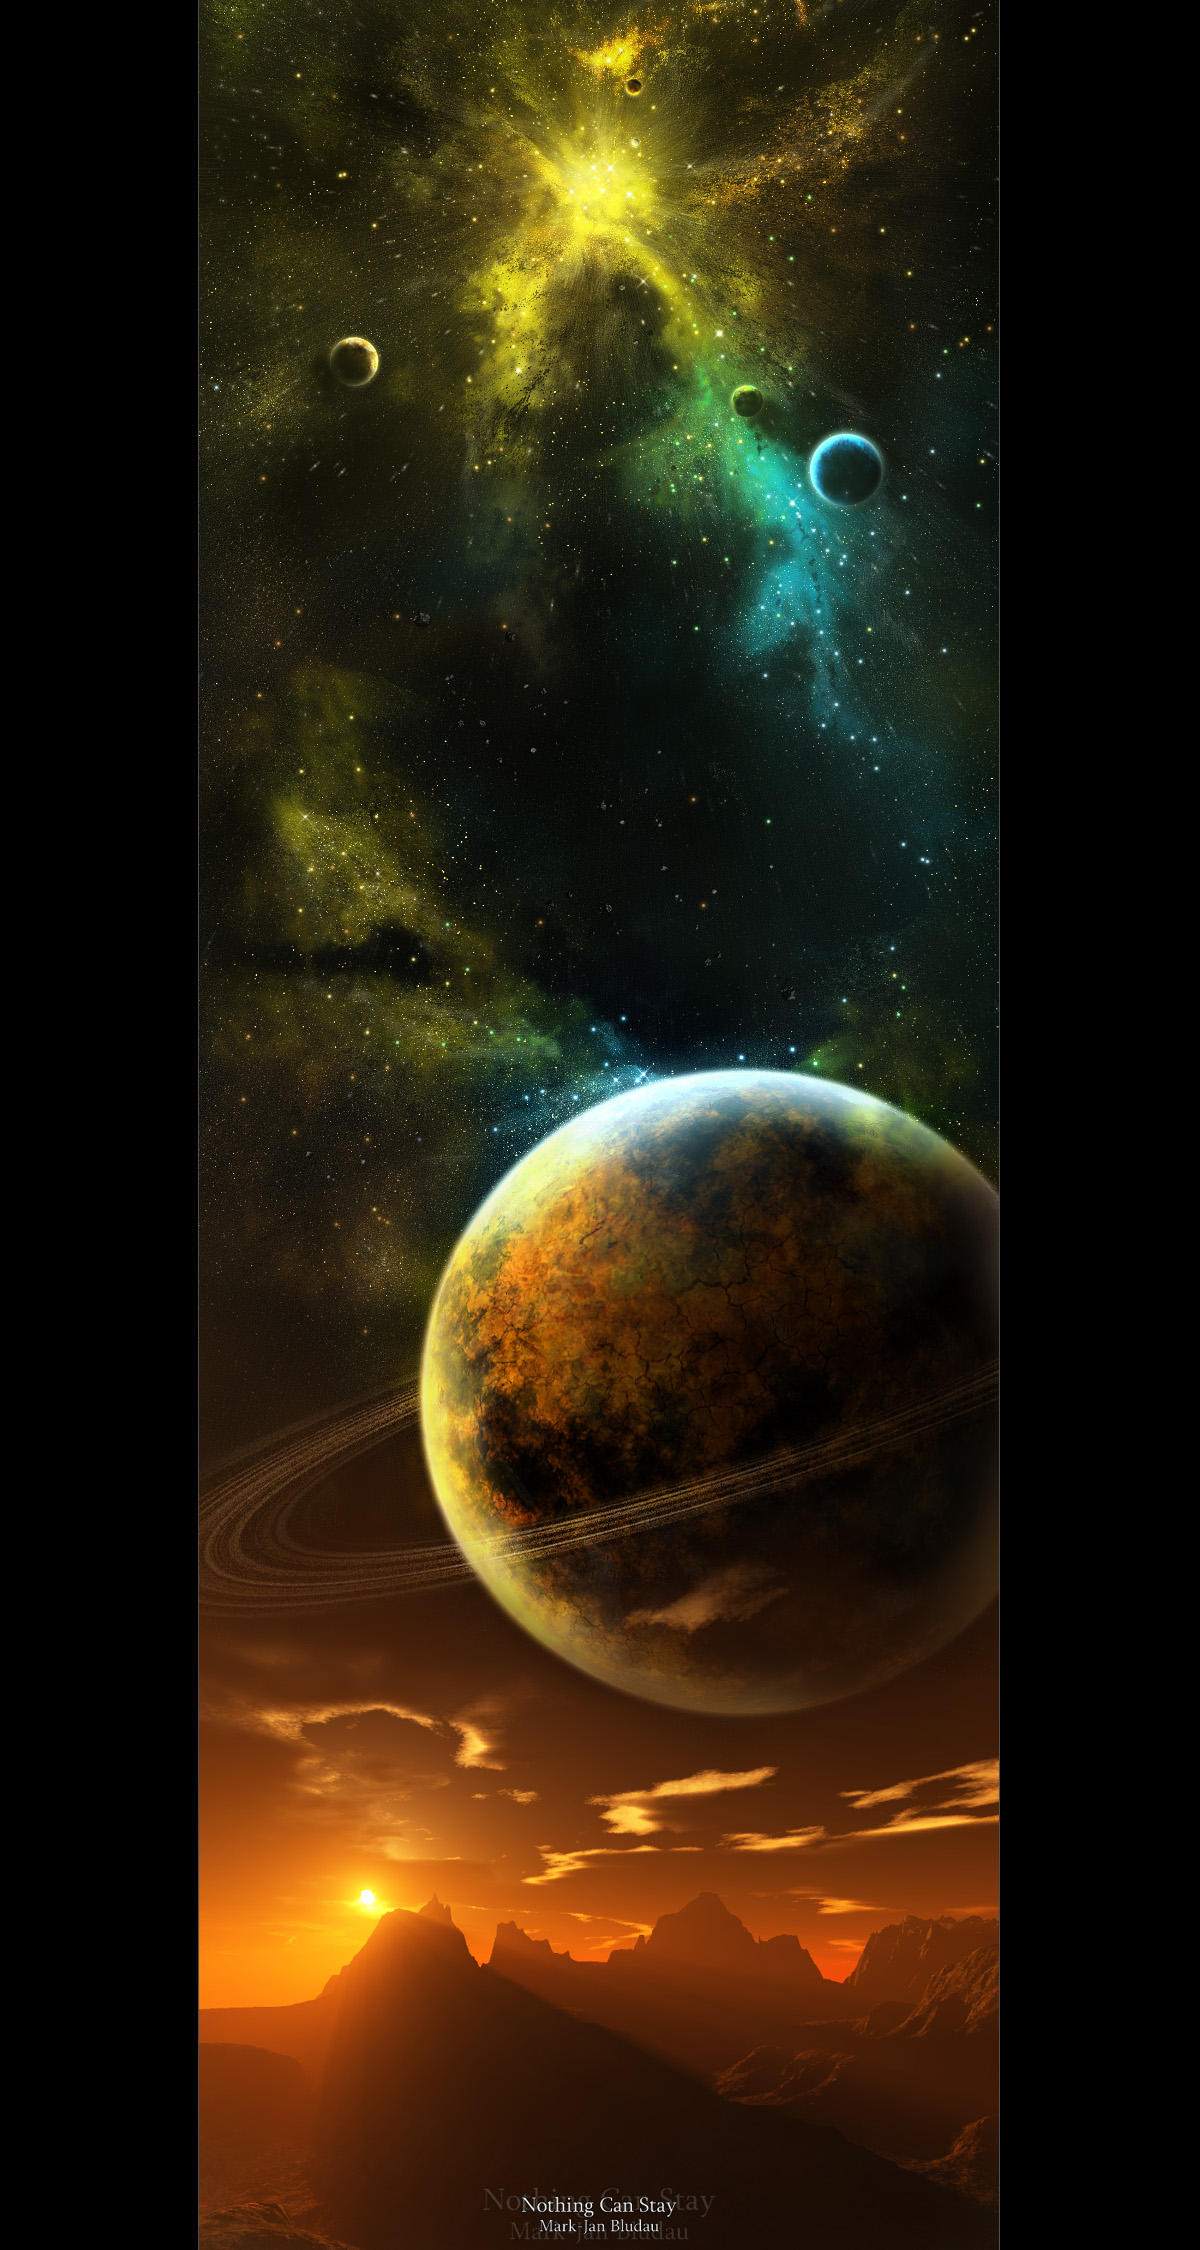 Nothing can stay by MJ00